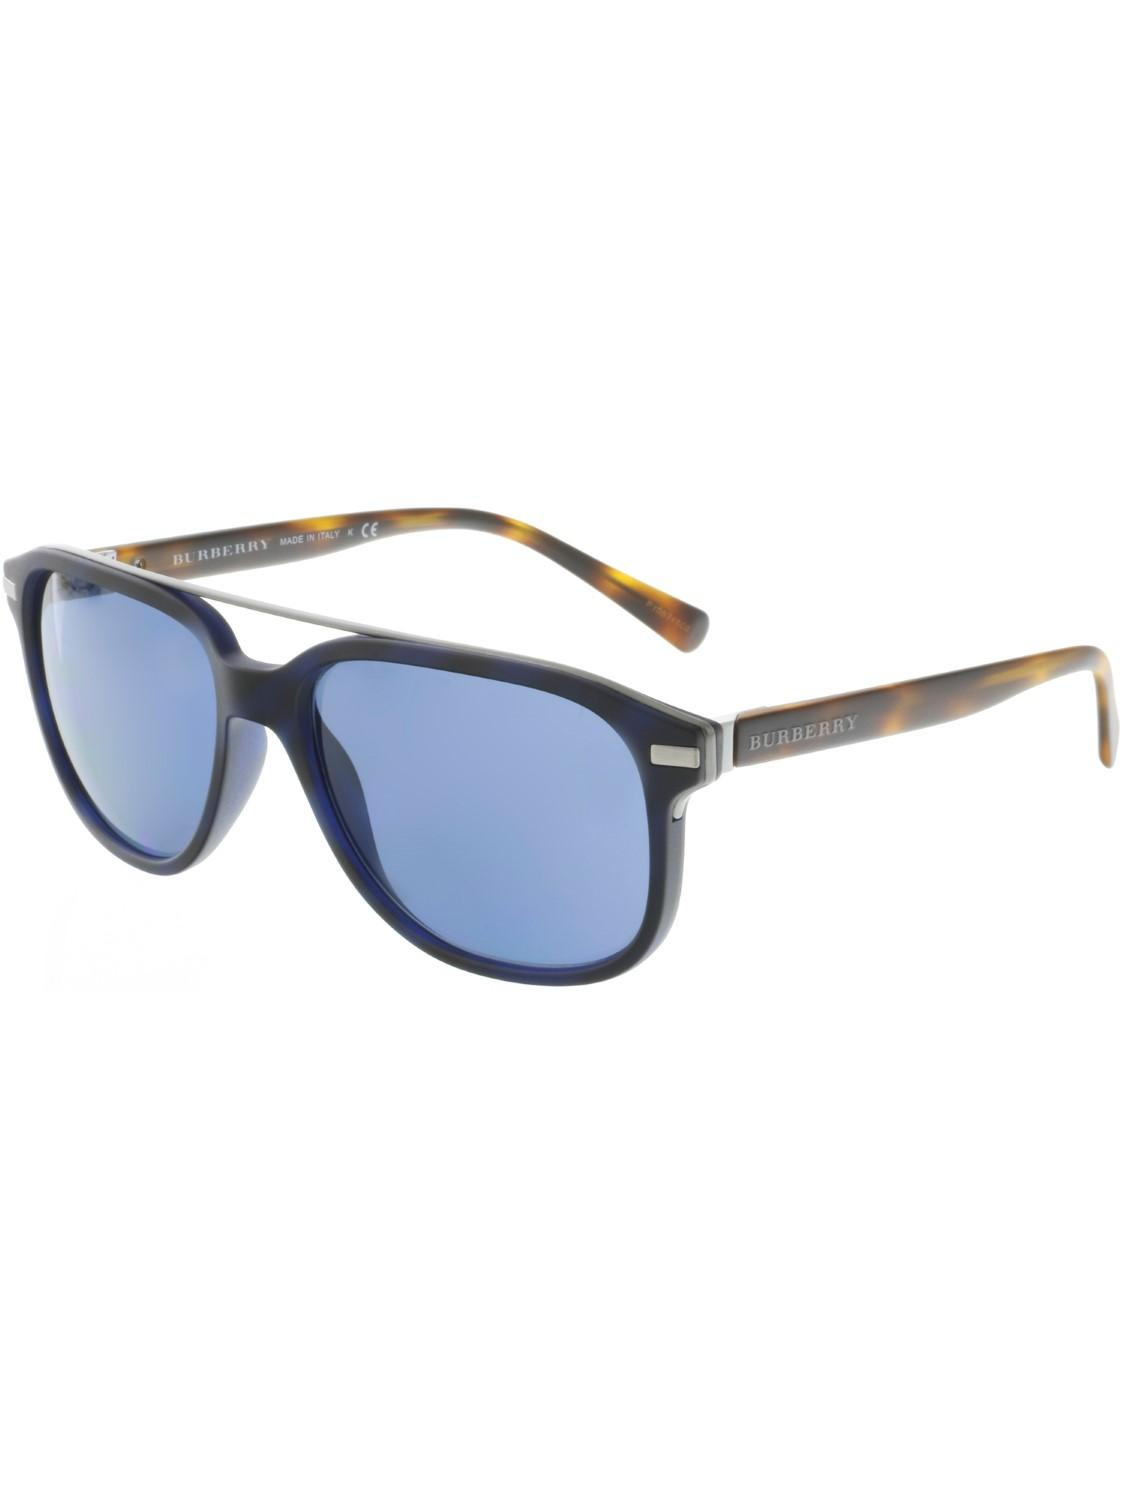 3503b2010452 Lyst - Burberry Be4233-362180-57 Blue Square Sunglasses in Black for Men